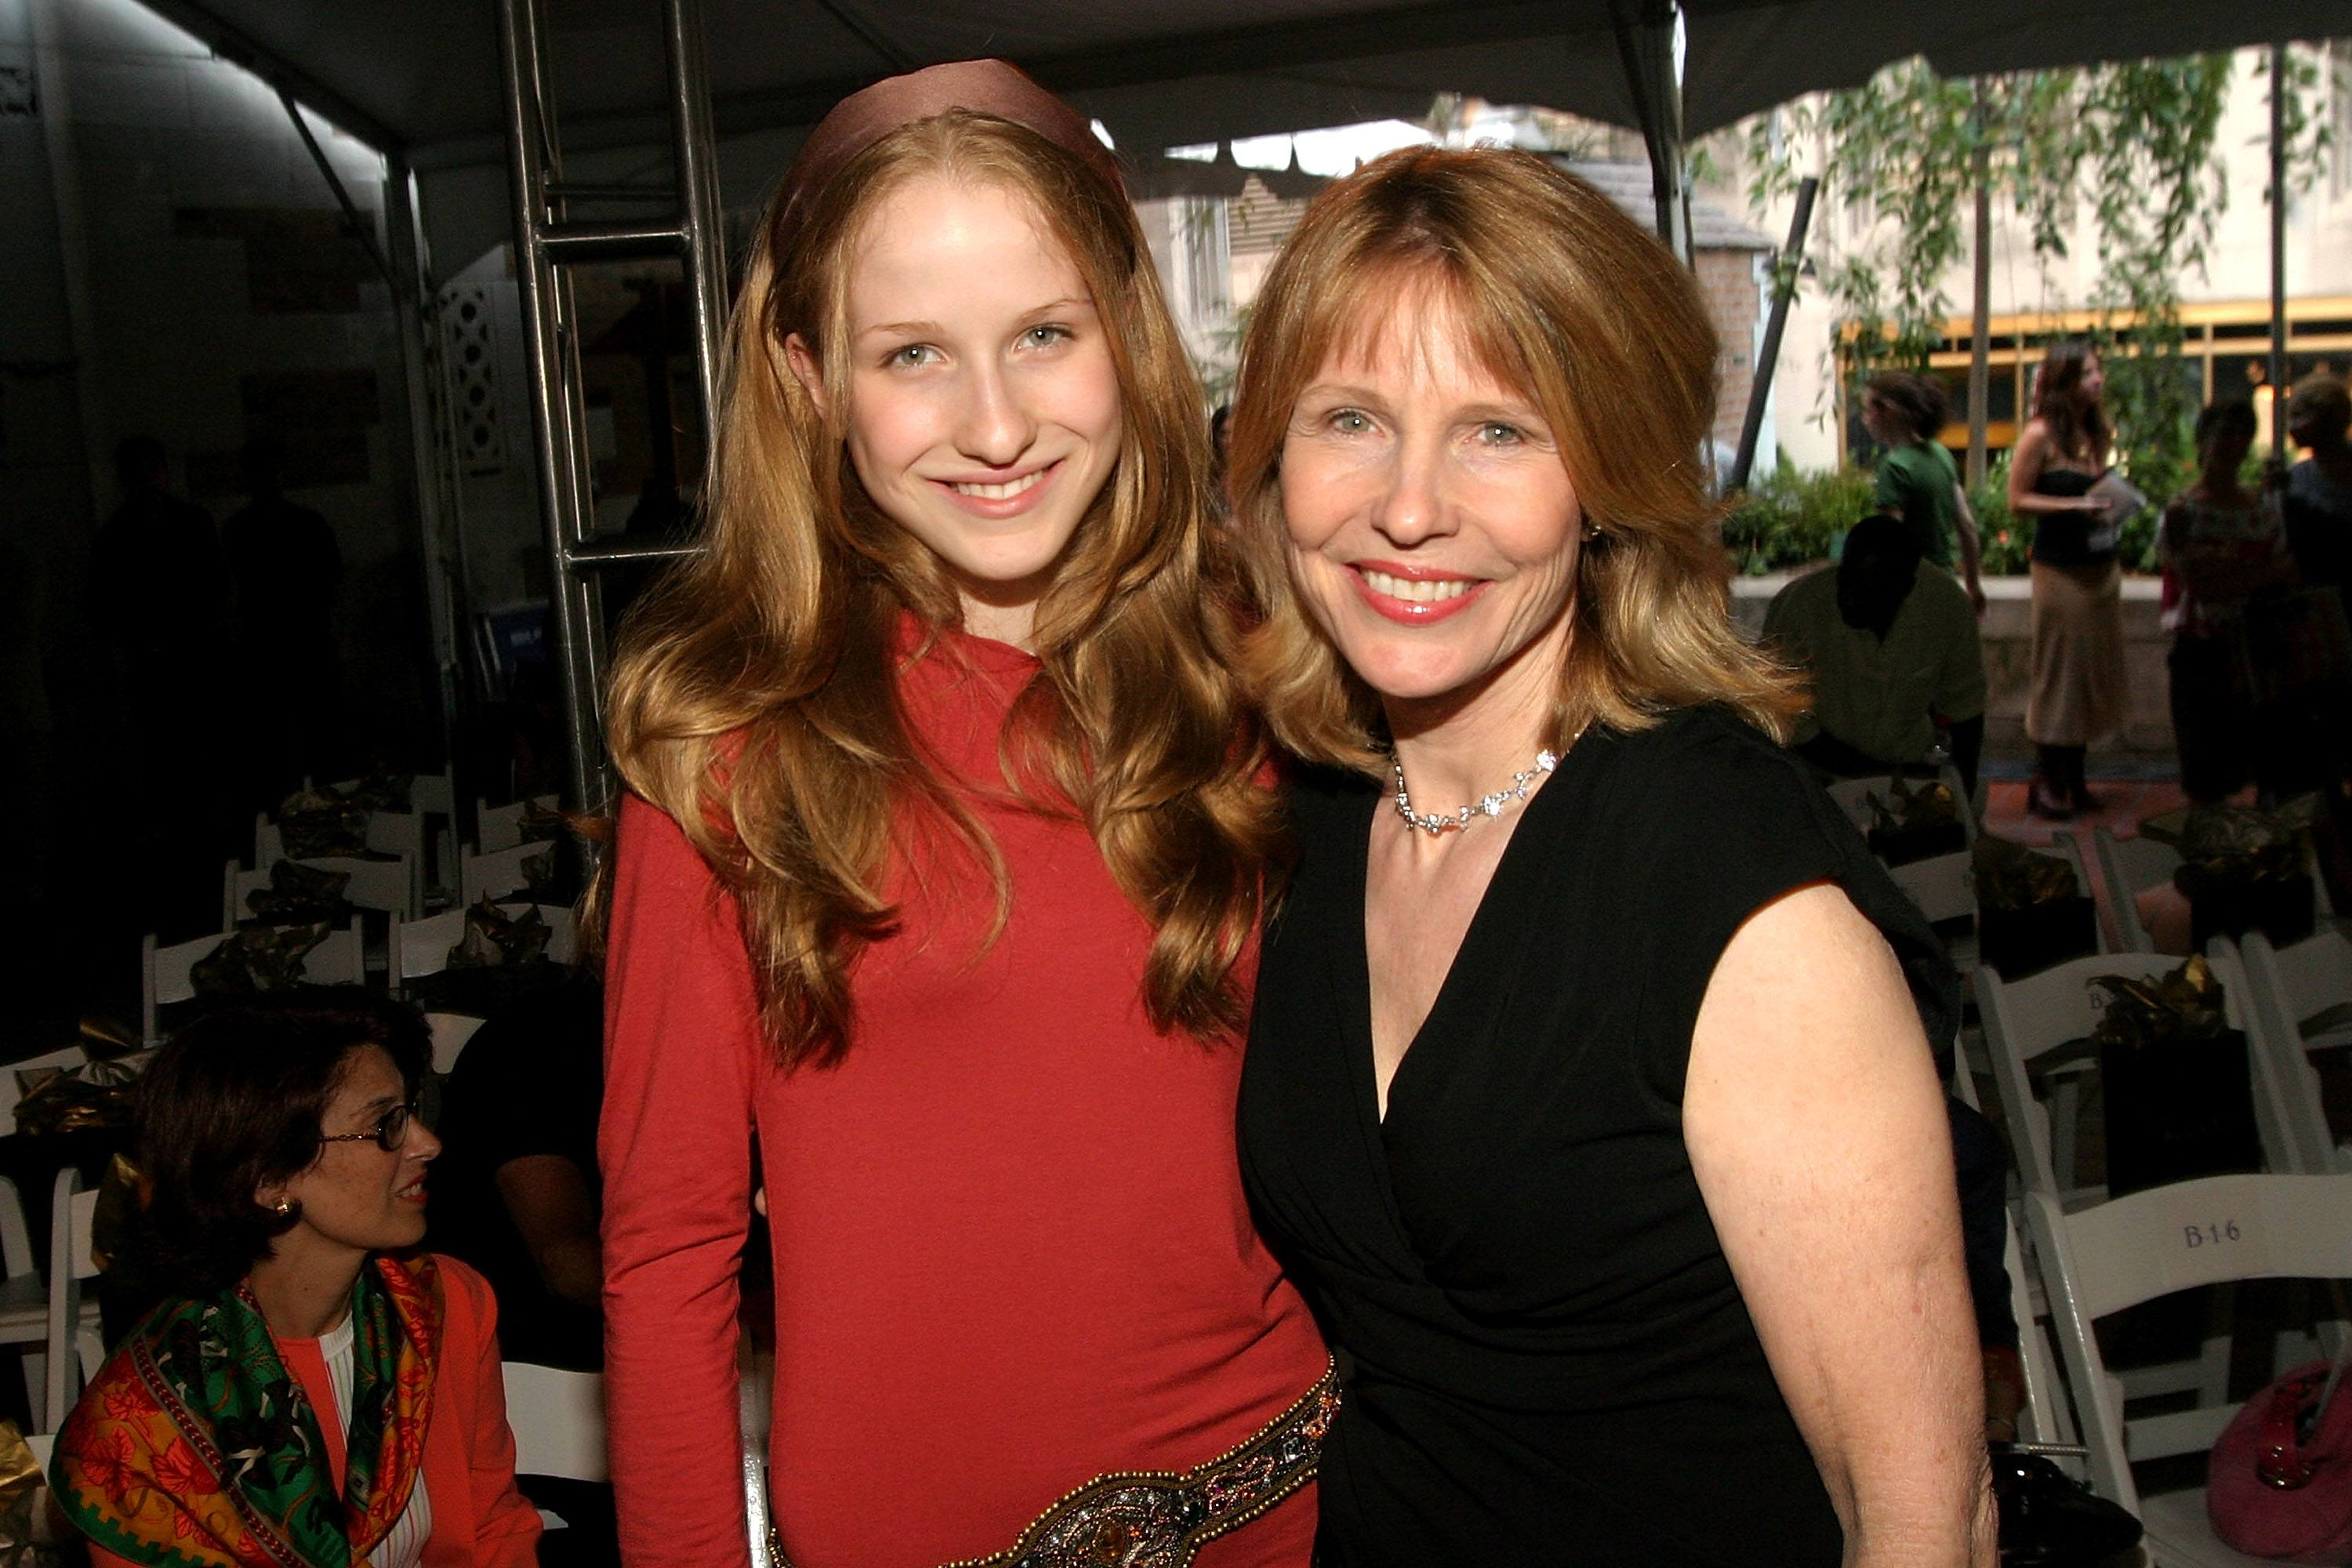 Caroline Giuliani (L) and her mother Donna Hanover in 2005